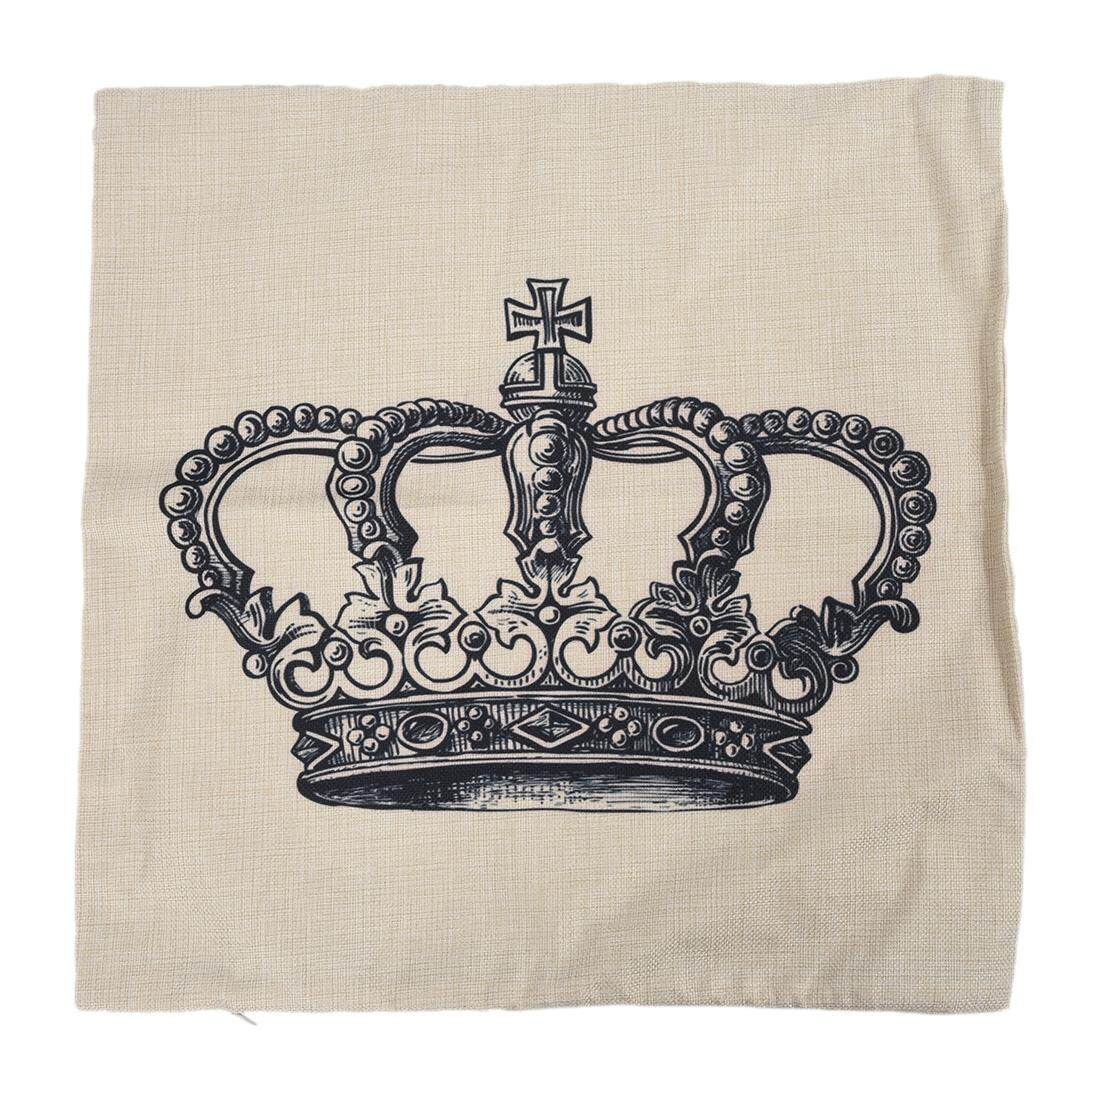 Home Decorative Linen Cotton Blended Cushion Cover Throw Pillow Case (Crown) - intl